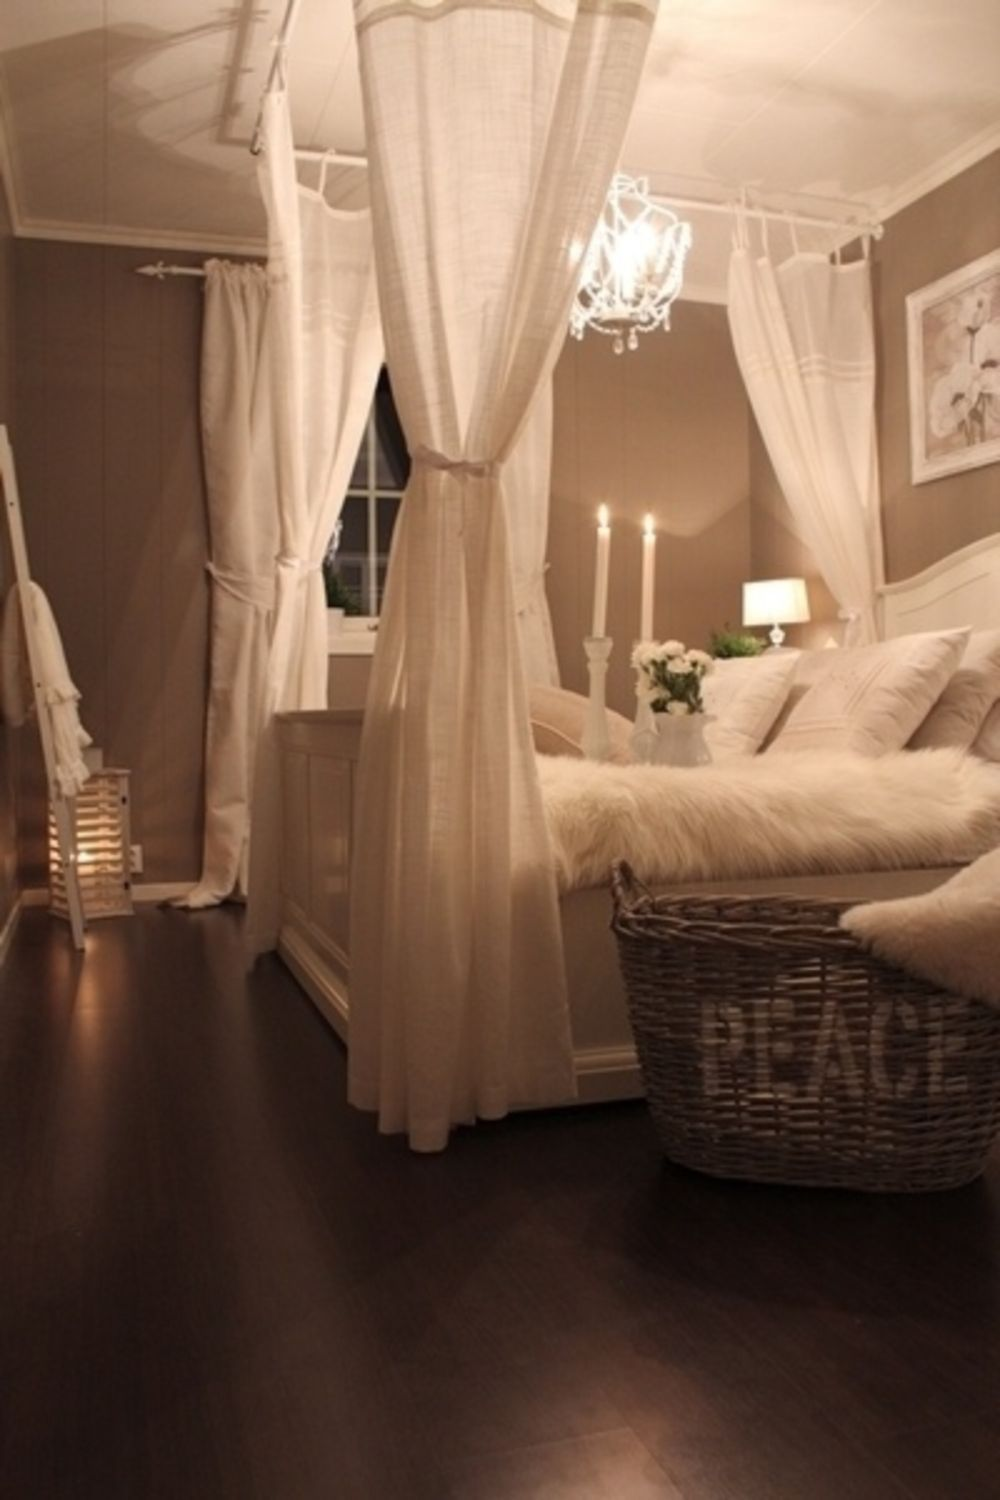 Gorgeous Romantic Bedroom for Couples Romantic and Bedrooms